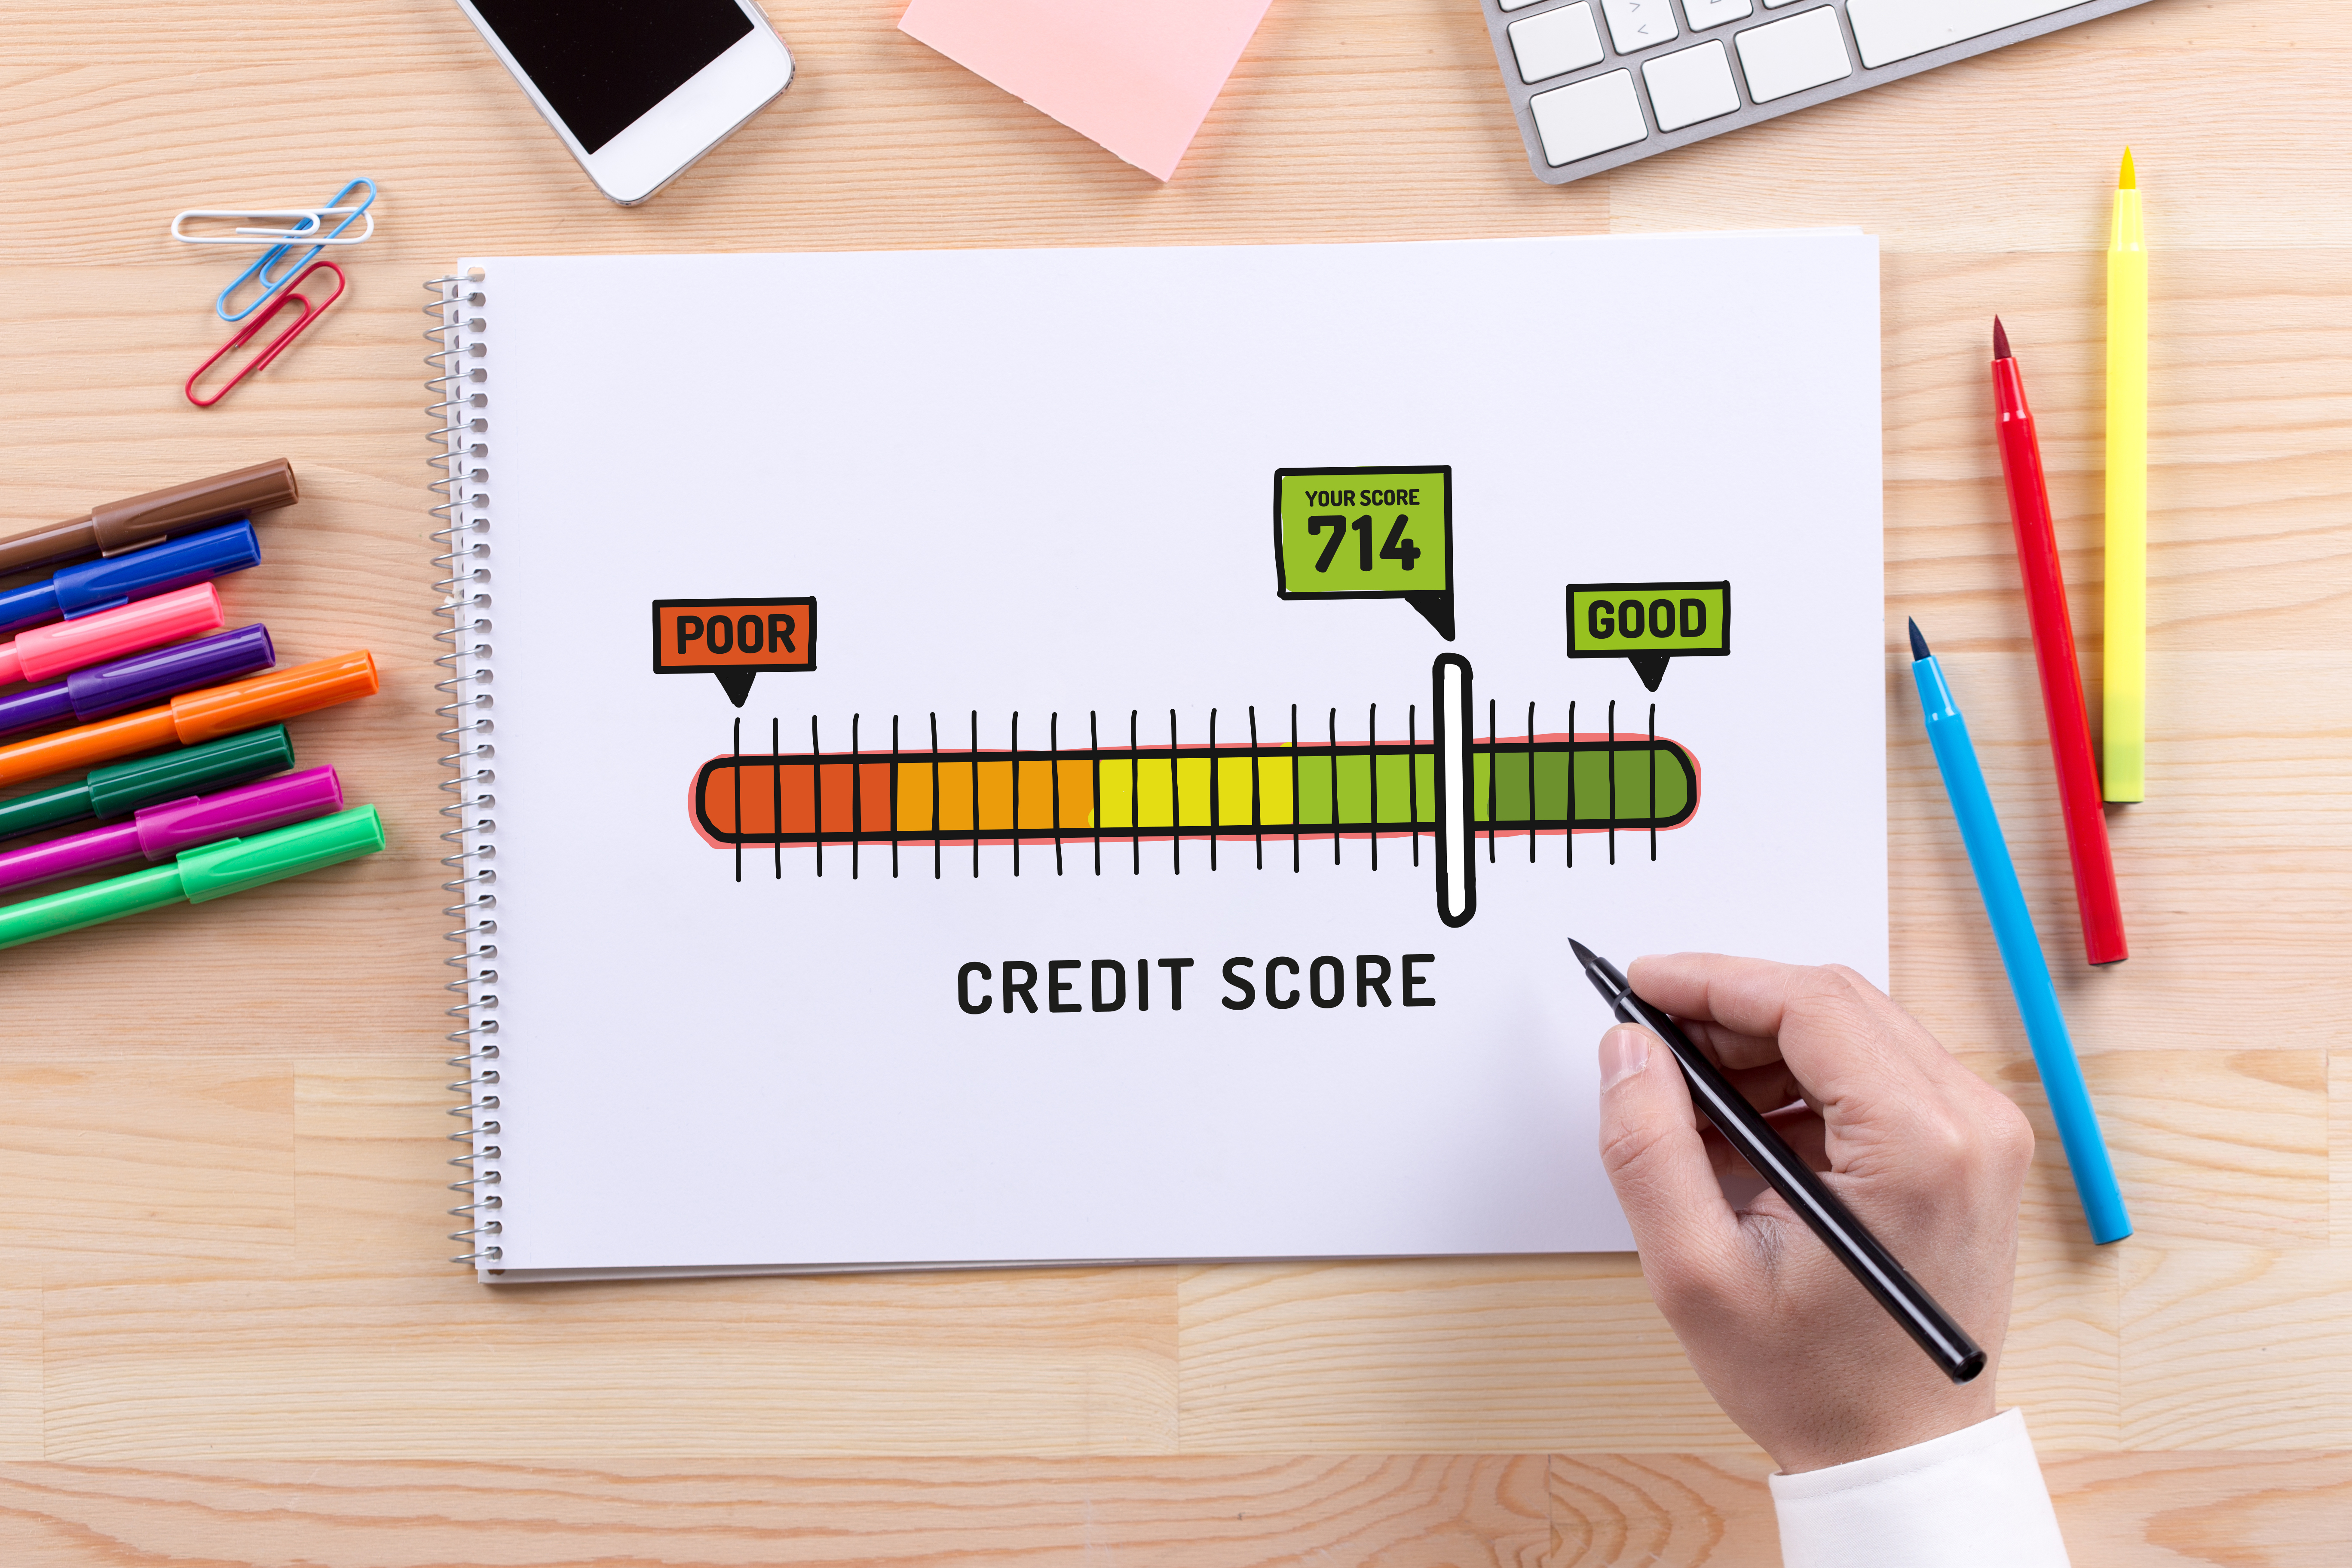 Everything you need to know about your credit score